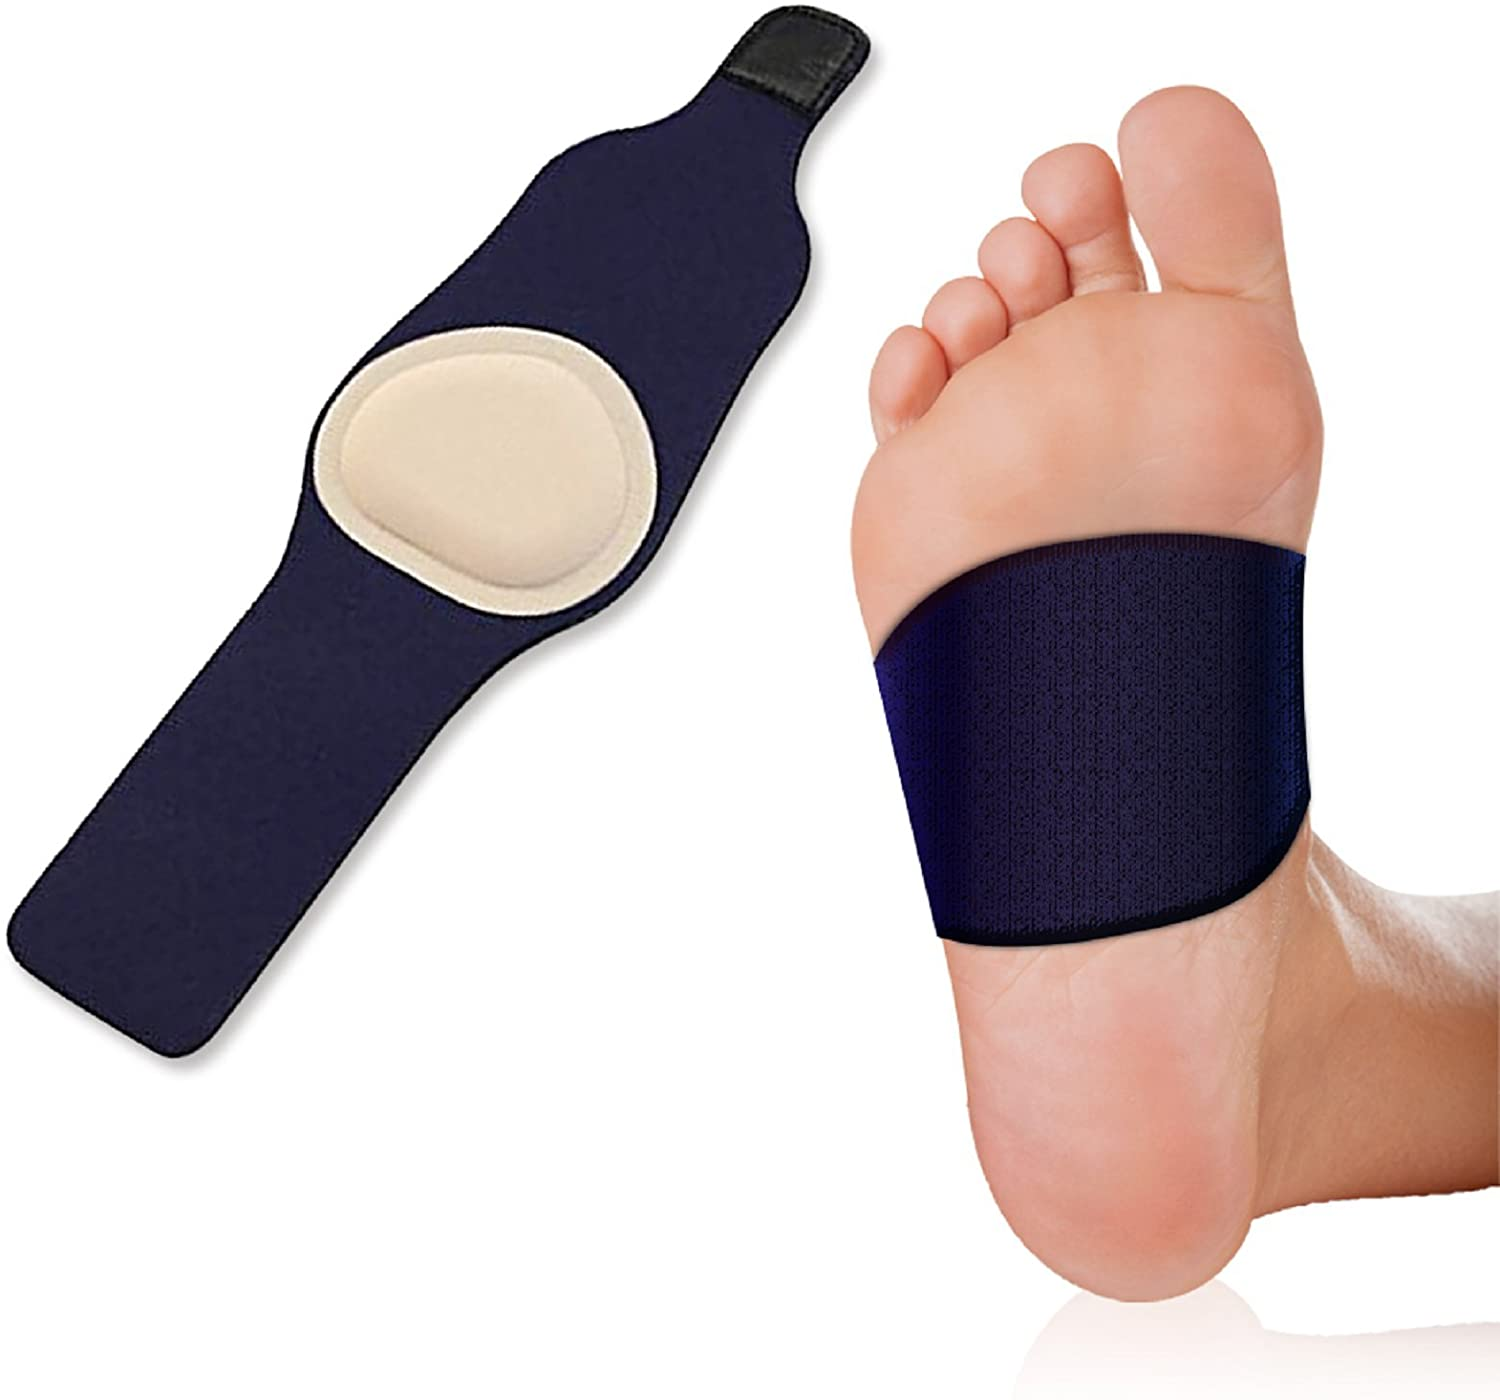 Plantar Fasciitis Arch Support Foot Pain Sleeve – Soft Gel Padding for Flat Feet and Plantar Fasciitis Pain Relief (1 Pair)